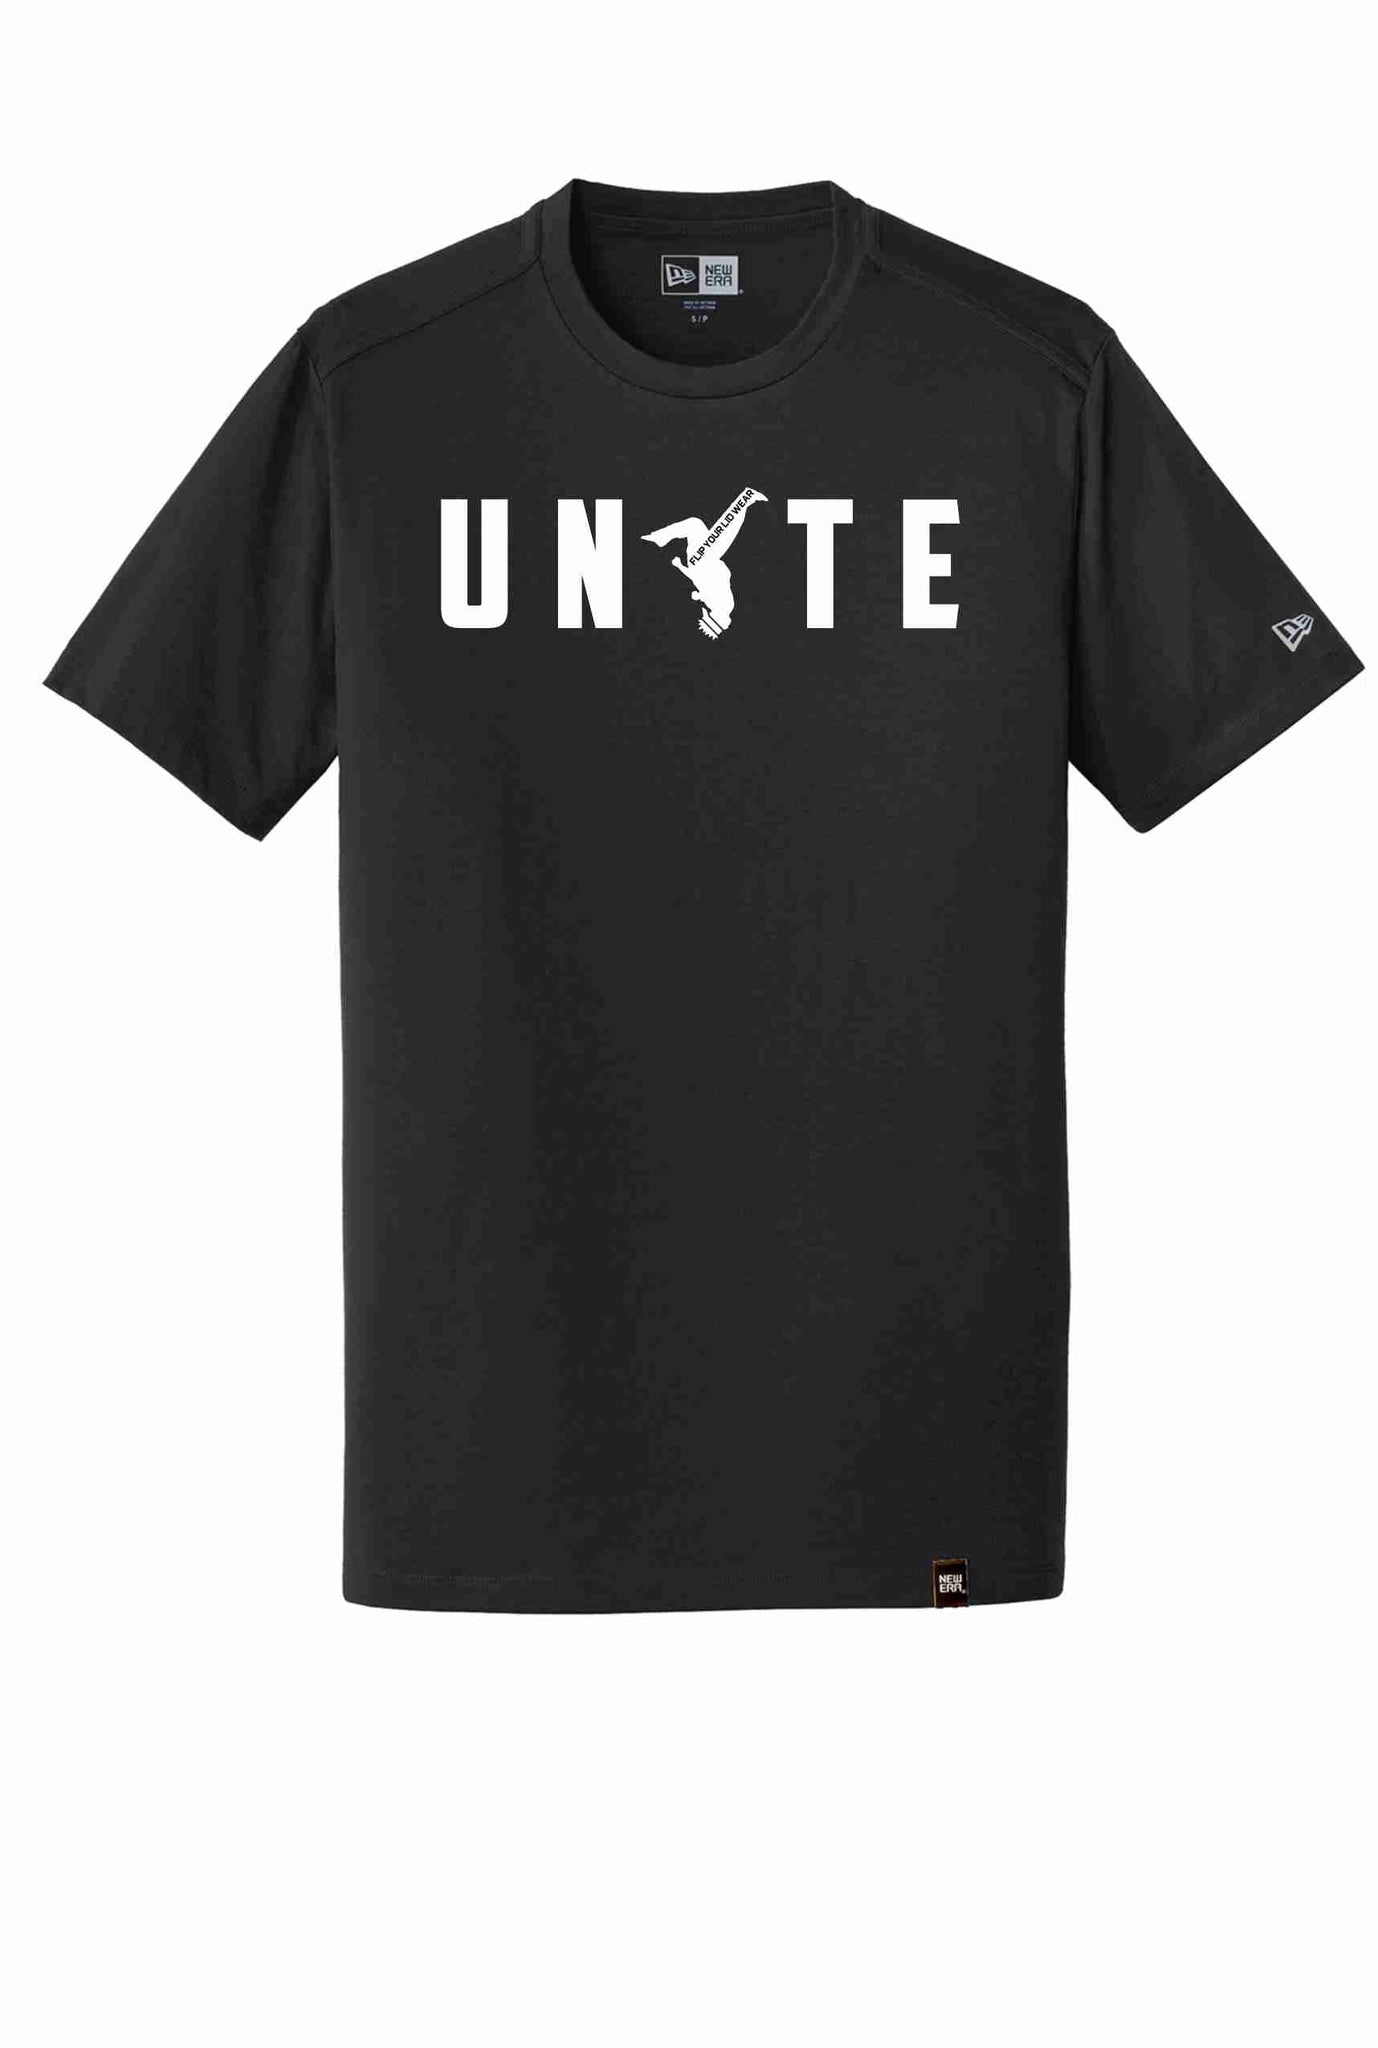 Flip Your Lid Wear Unite T Shirt